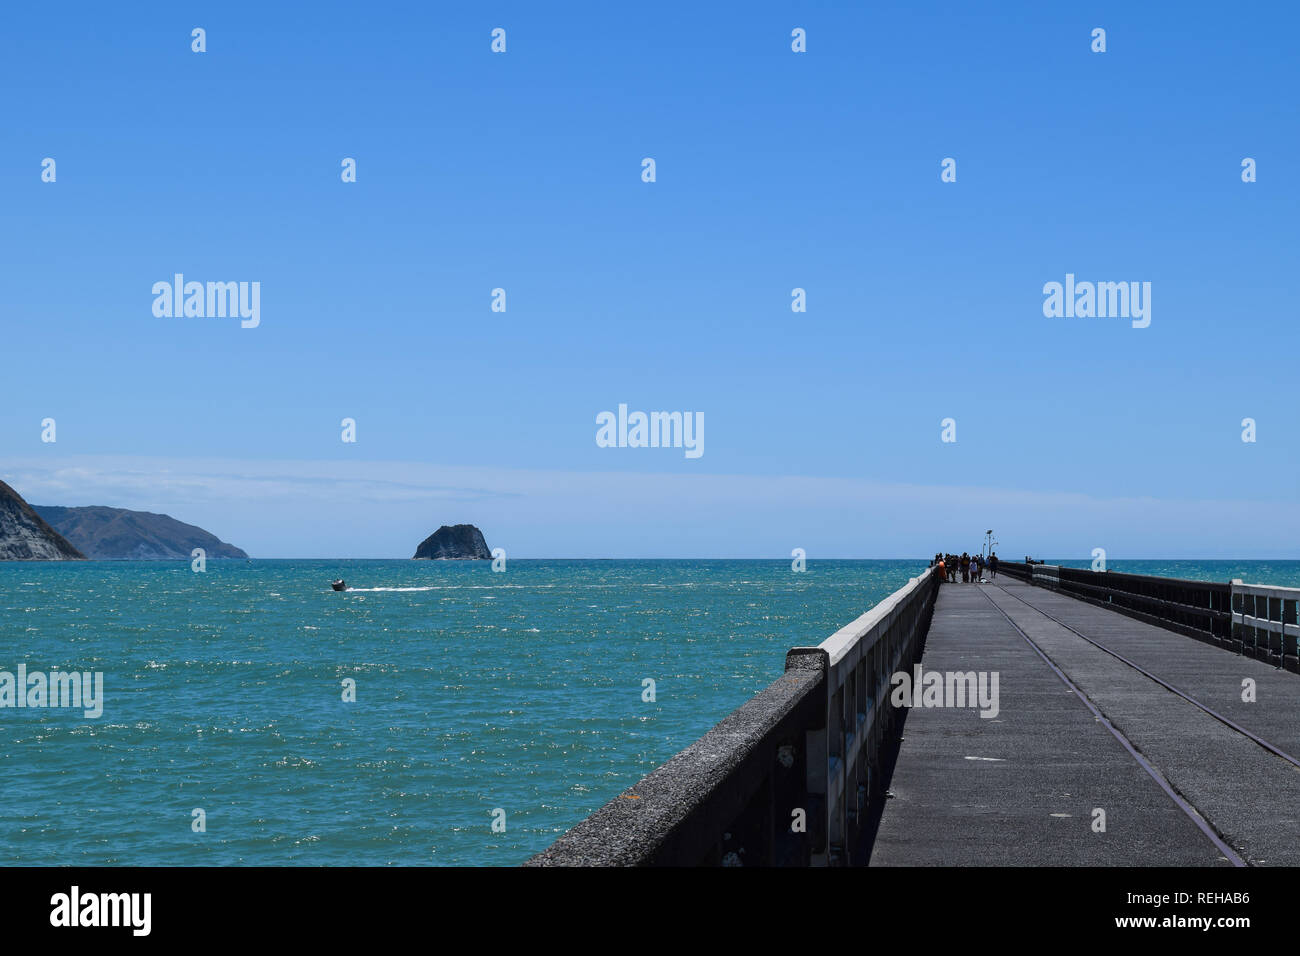 A long shot of the pier as it heads out to sea with the cliffs in the background in Tolaga Bay, New Zealand - Stock Image